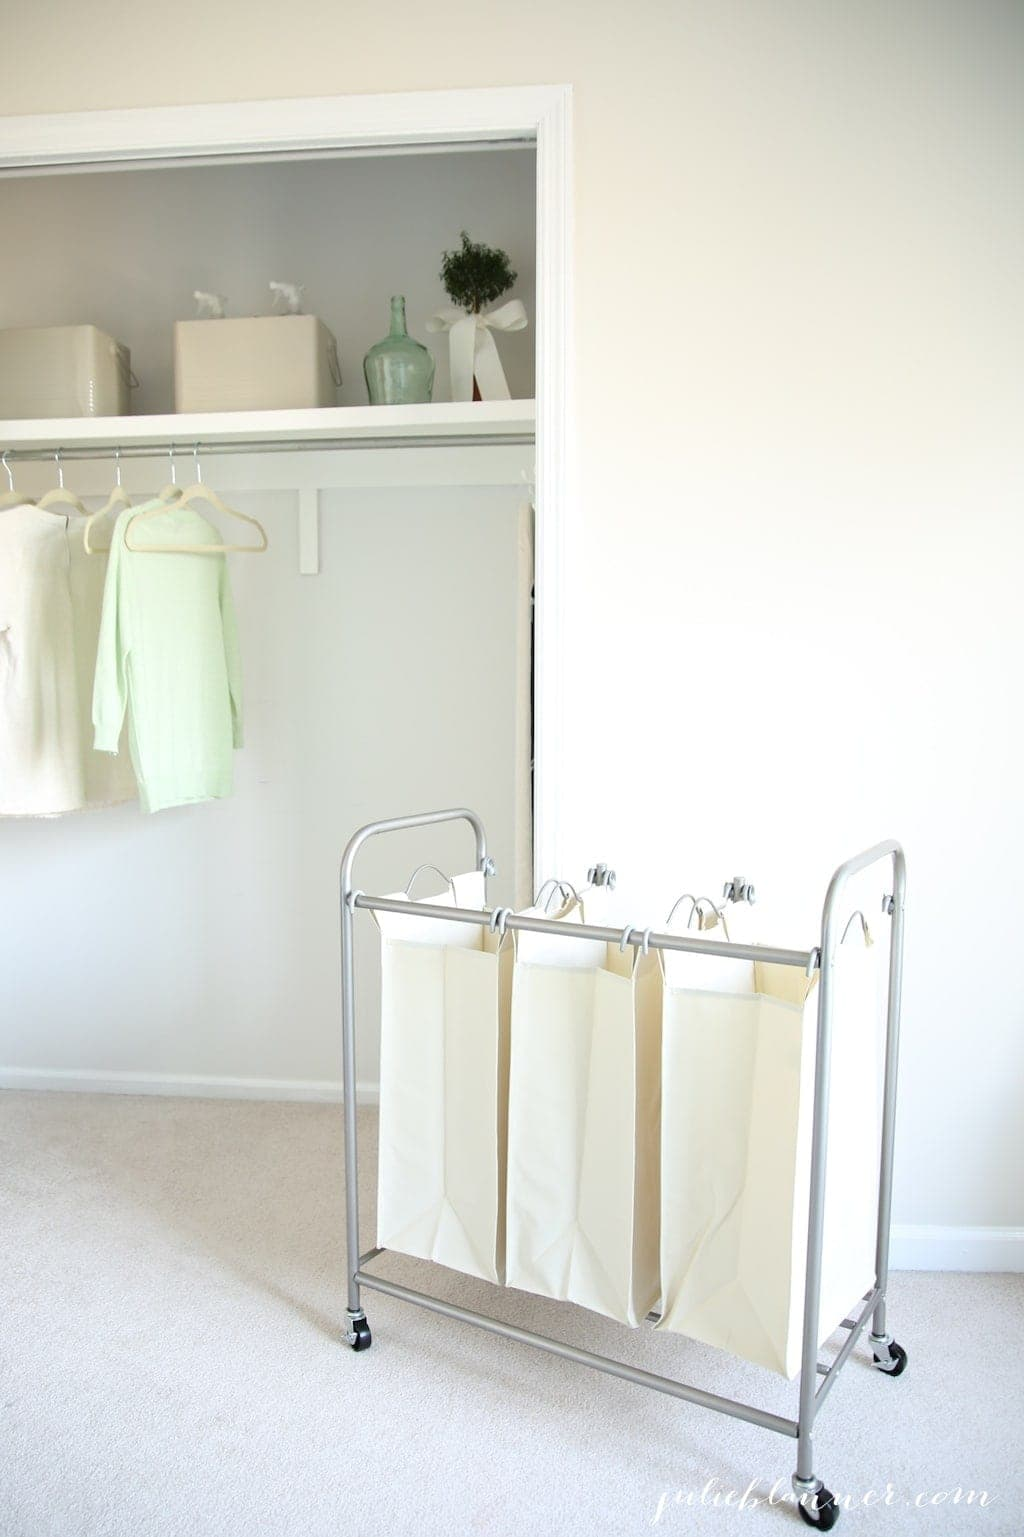 Laundry room ideas with BHG - a laundry sorter